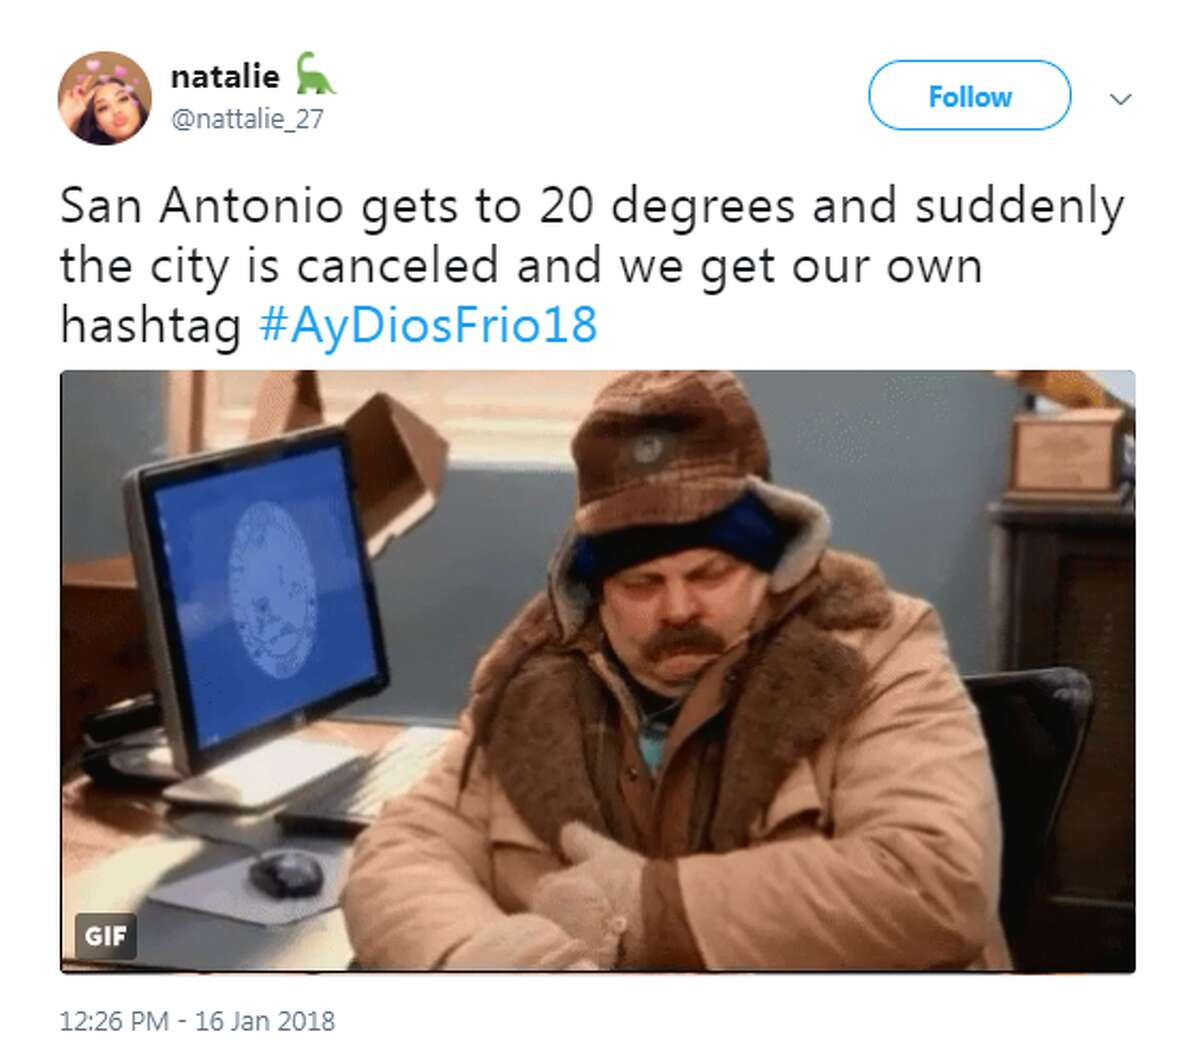 @nattalie_27: San Antonio gets to 20 degrees and suddenly the city is canceled and we get our own hashtag #AyDiosFrio18